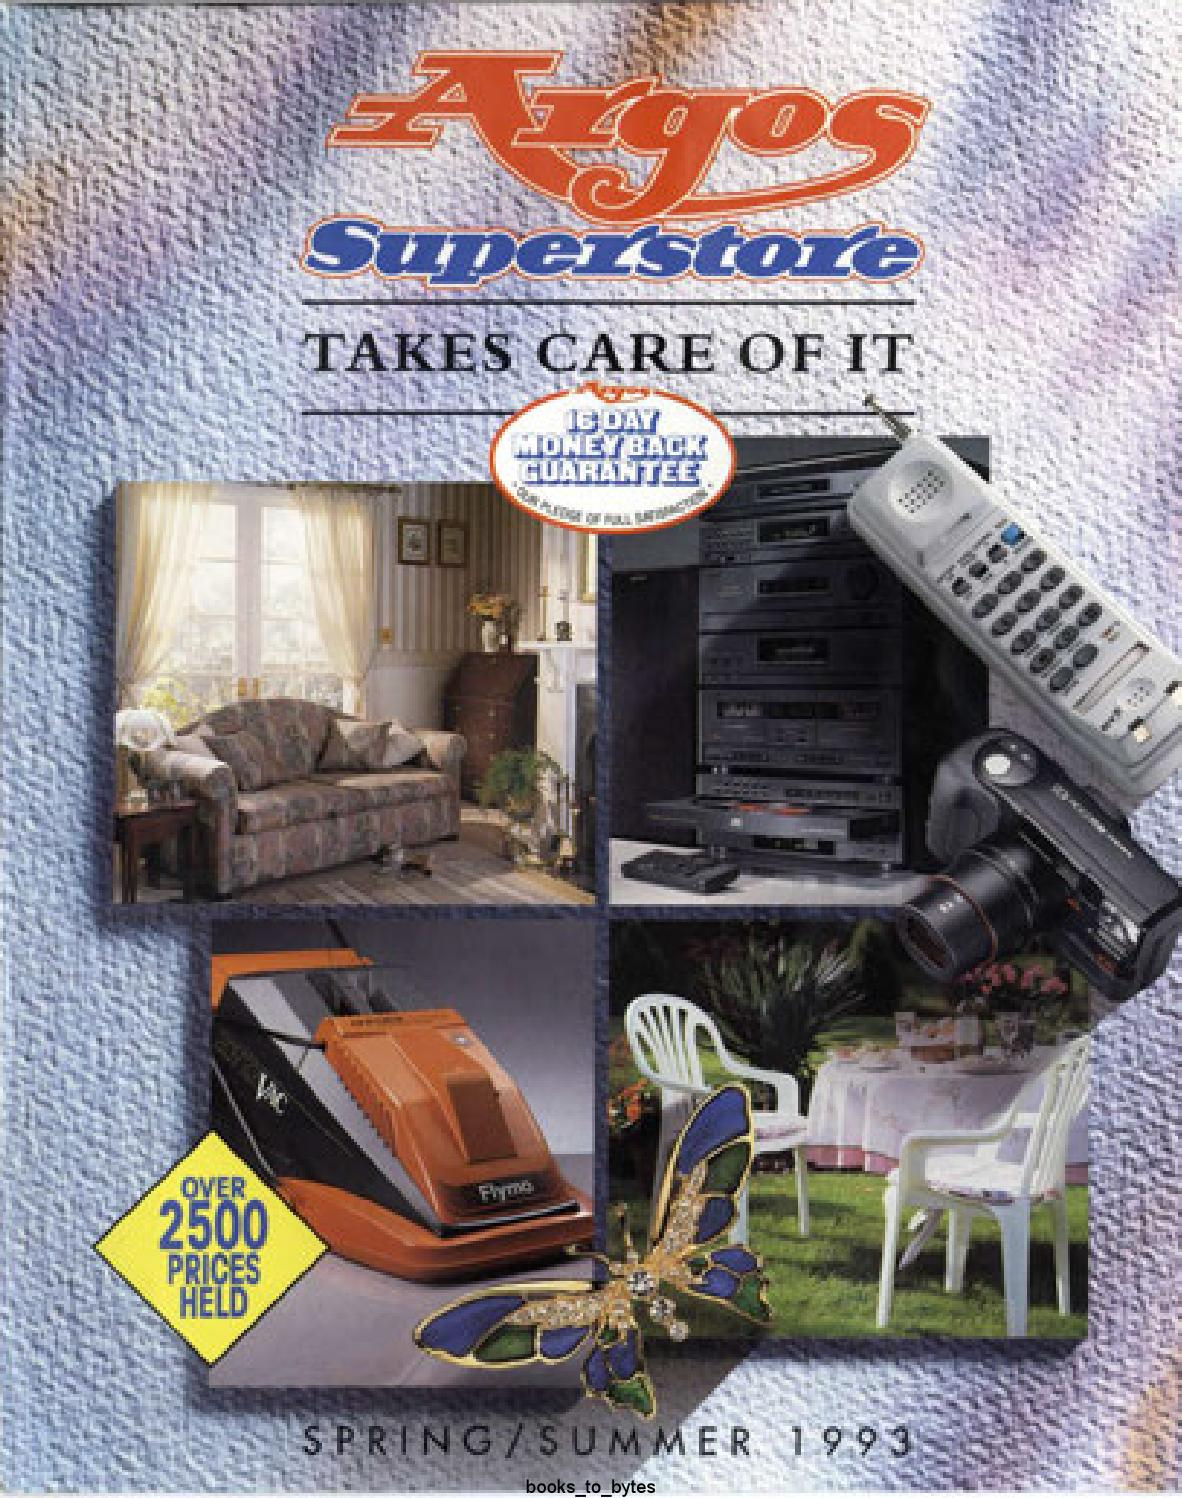 argos superstore 1993 spring summer by retromash issuu. Black Bedroom Furniture Sets. Home Design Ideas